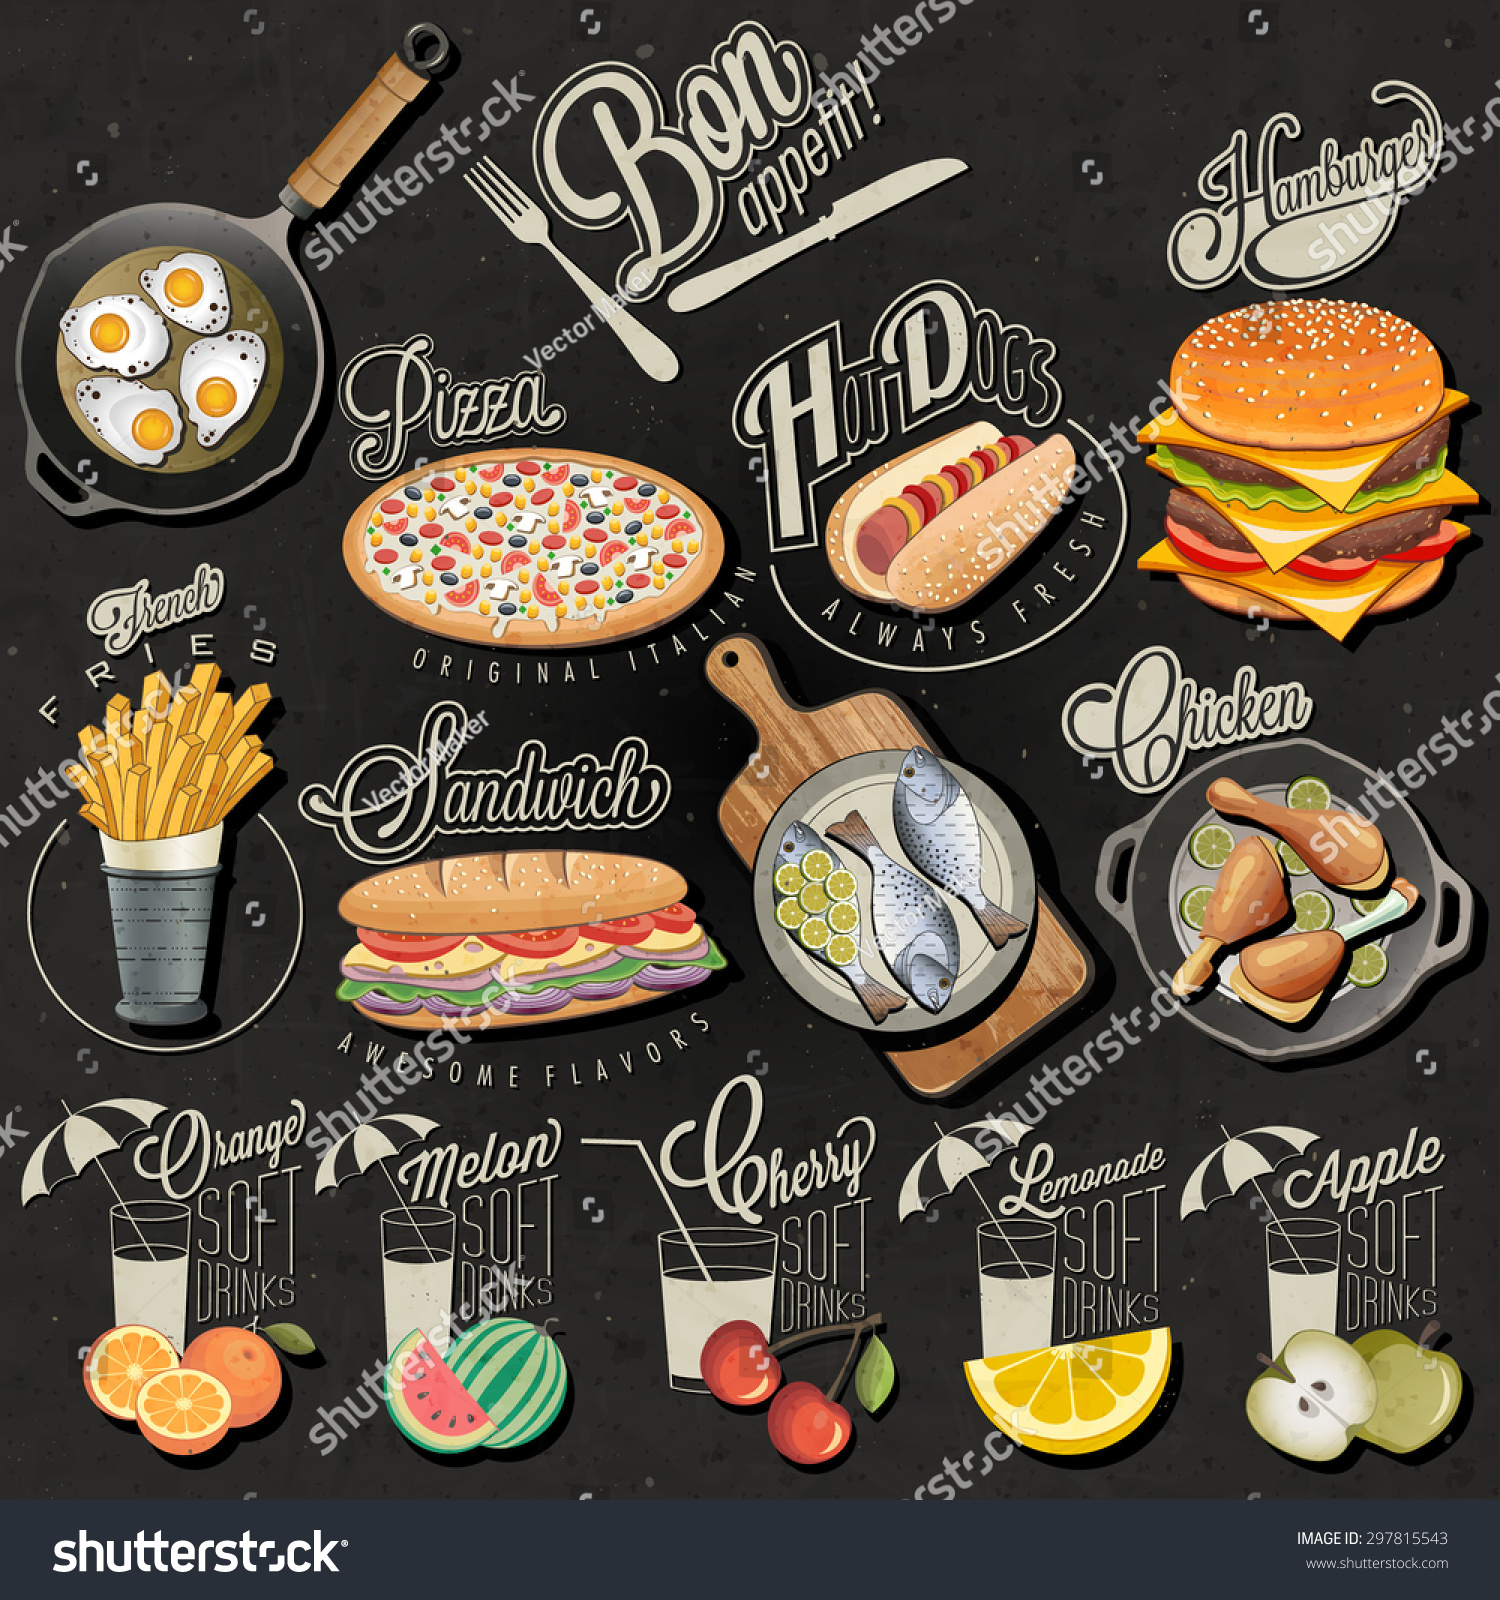 Retro Vintage Style Fast Food Drinks Stock Vector Royalty Free